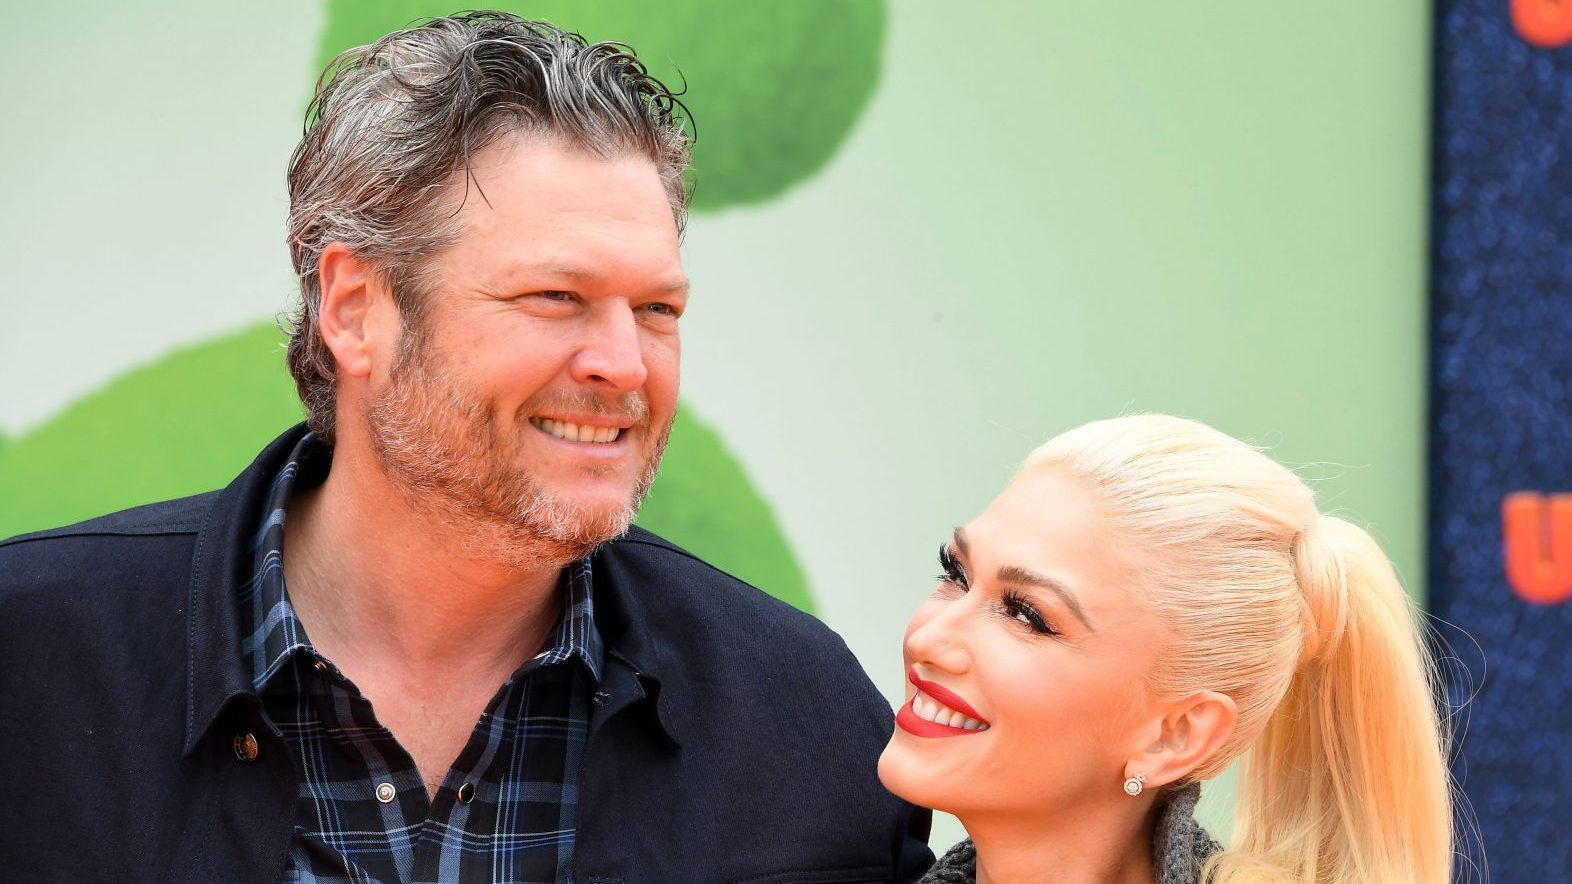 blake-shelton-shares-his-thoughts-on-gwen-stefani-maybe-proposing-to-him-does-he-think-shell-do-it